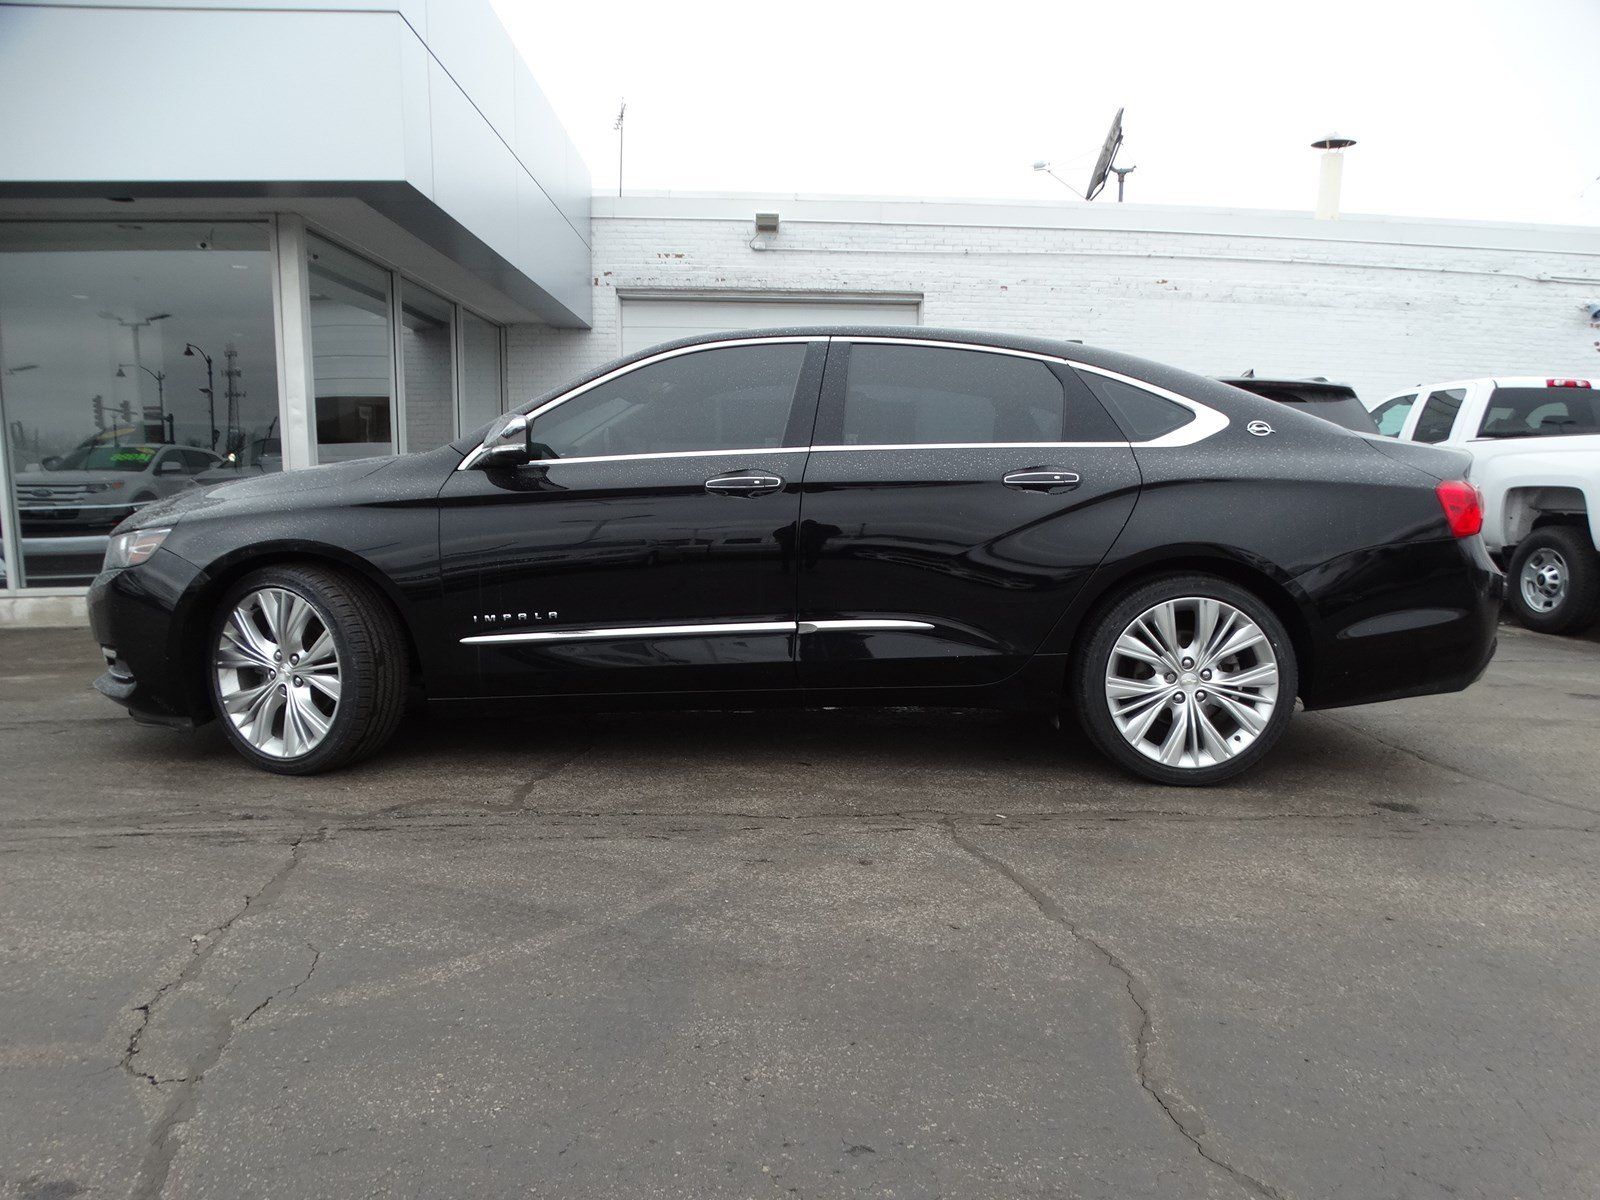 Certified Pre-Owned 2014 Chevrolet Impala LTZ